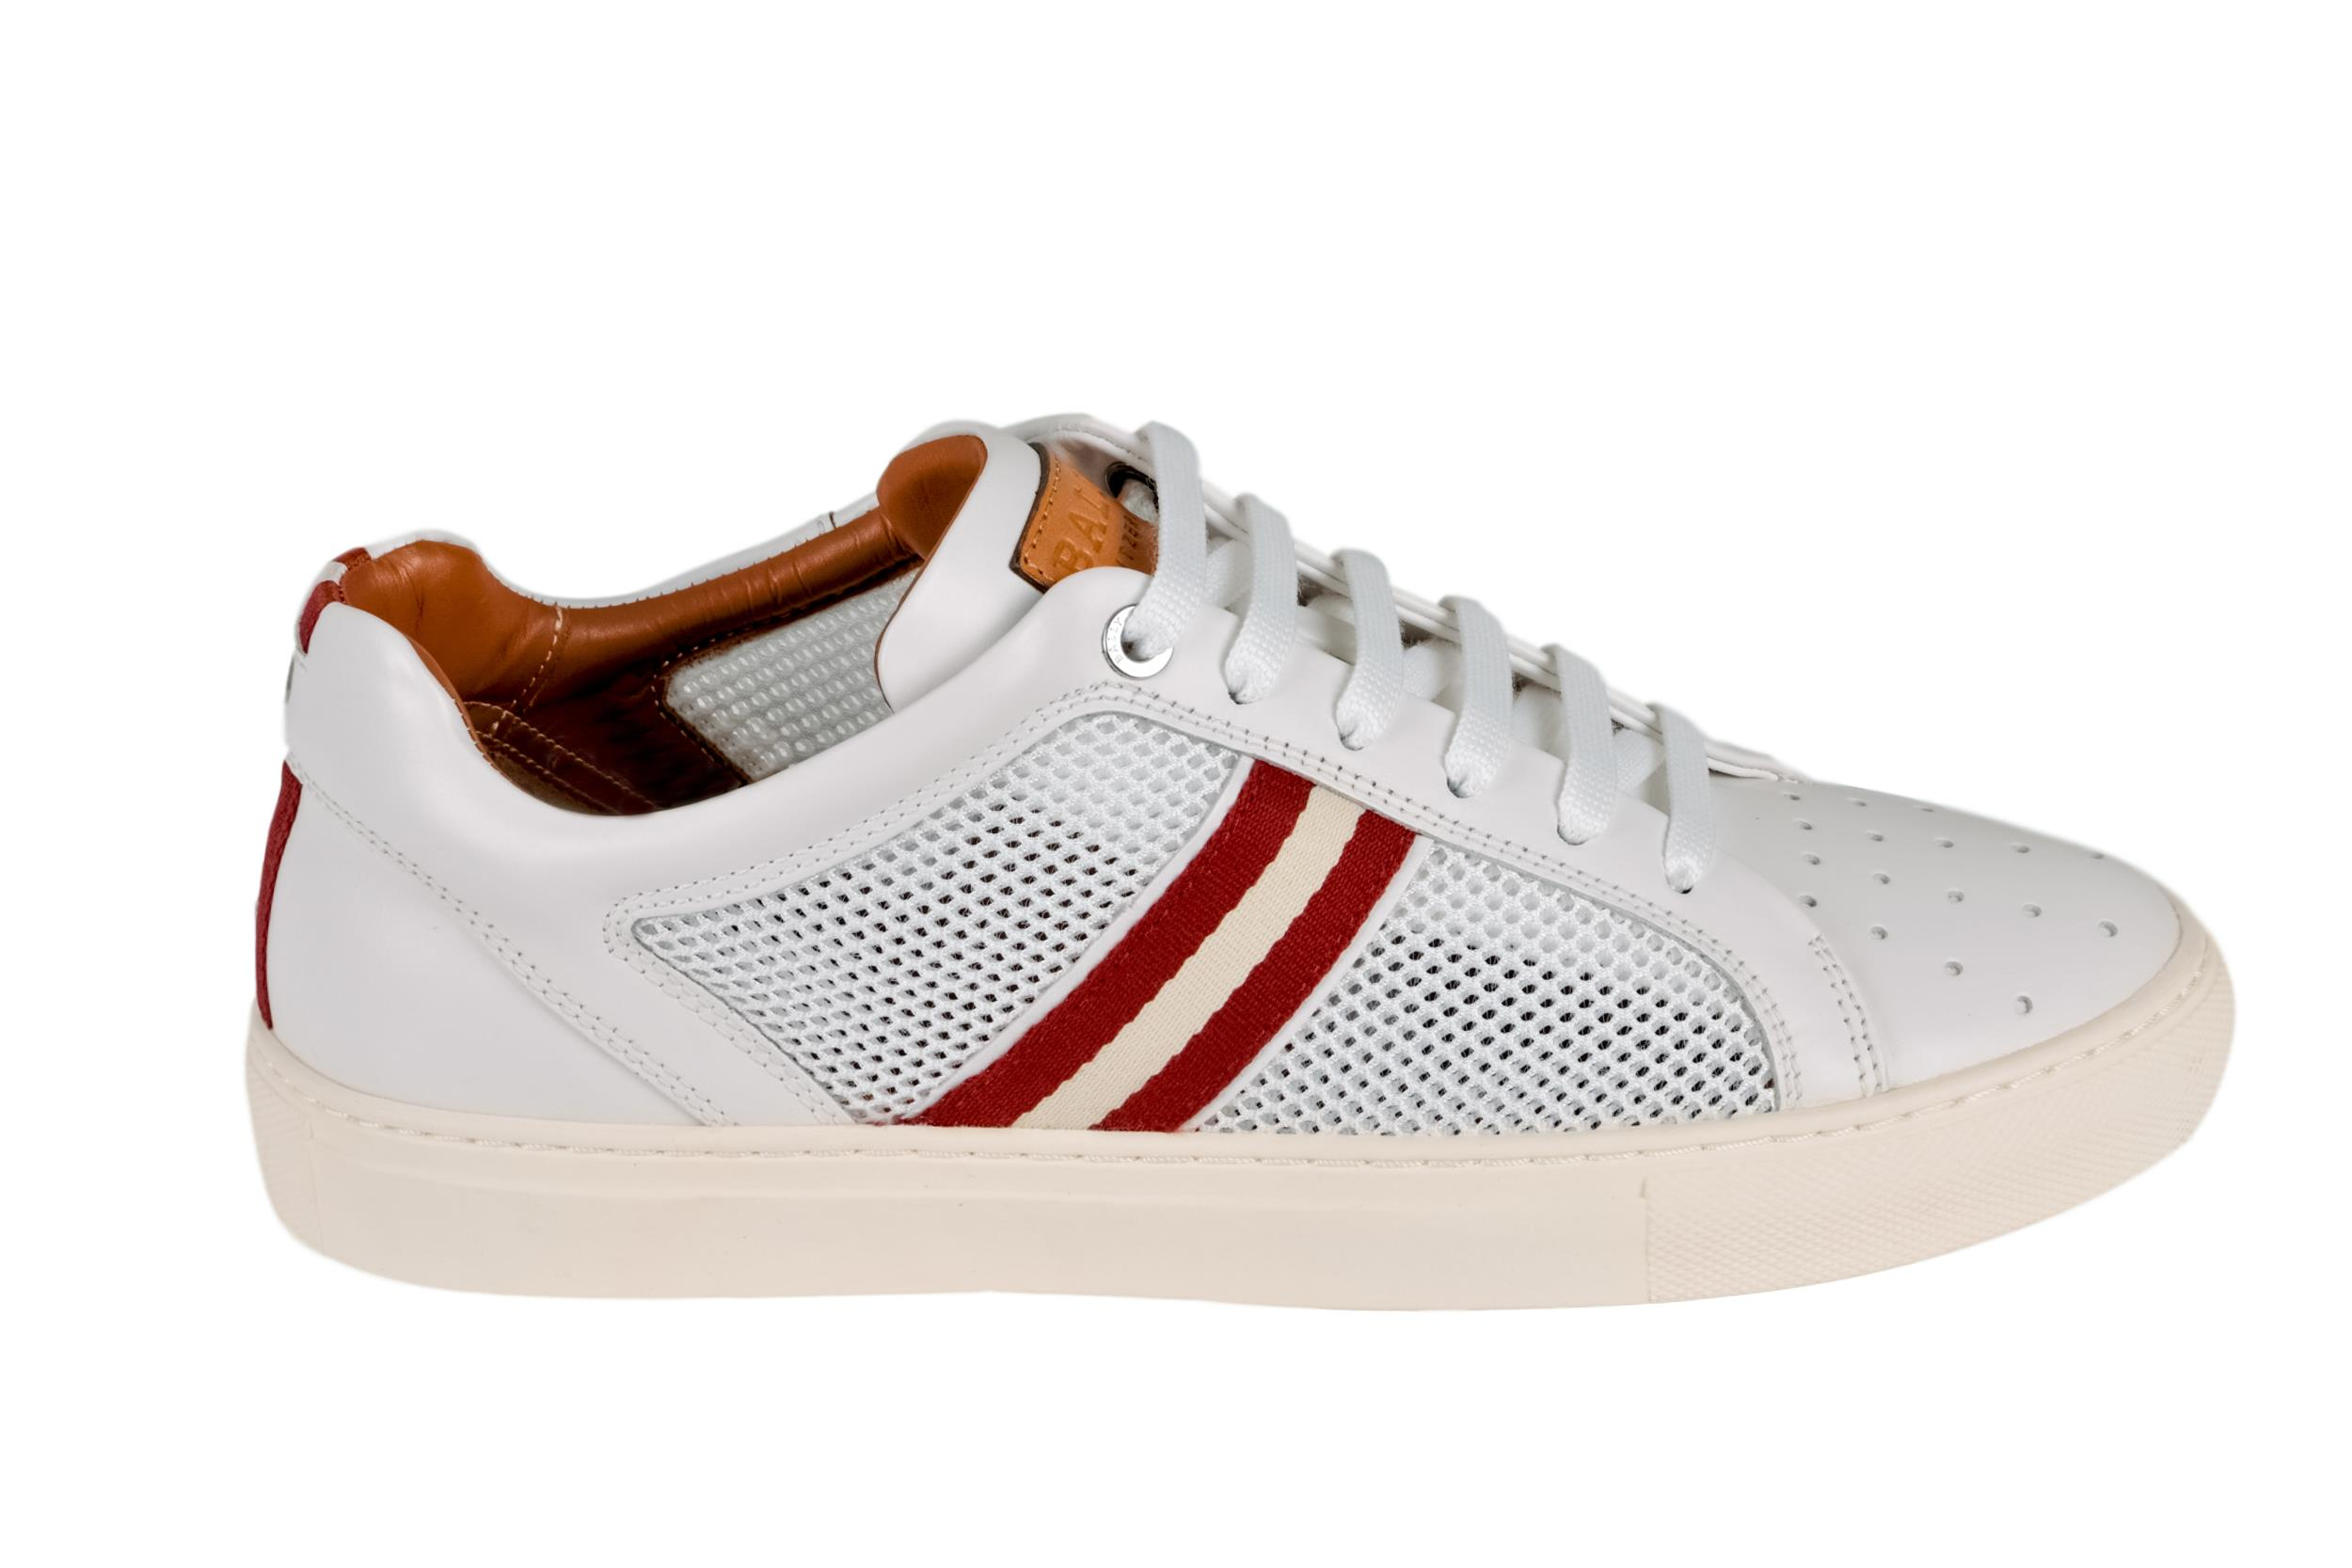 Herk White, Mens calf leather and mesh low-top sneaker in white Bally